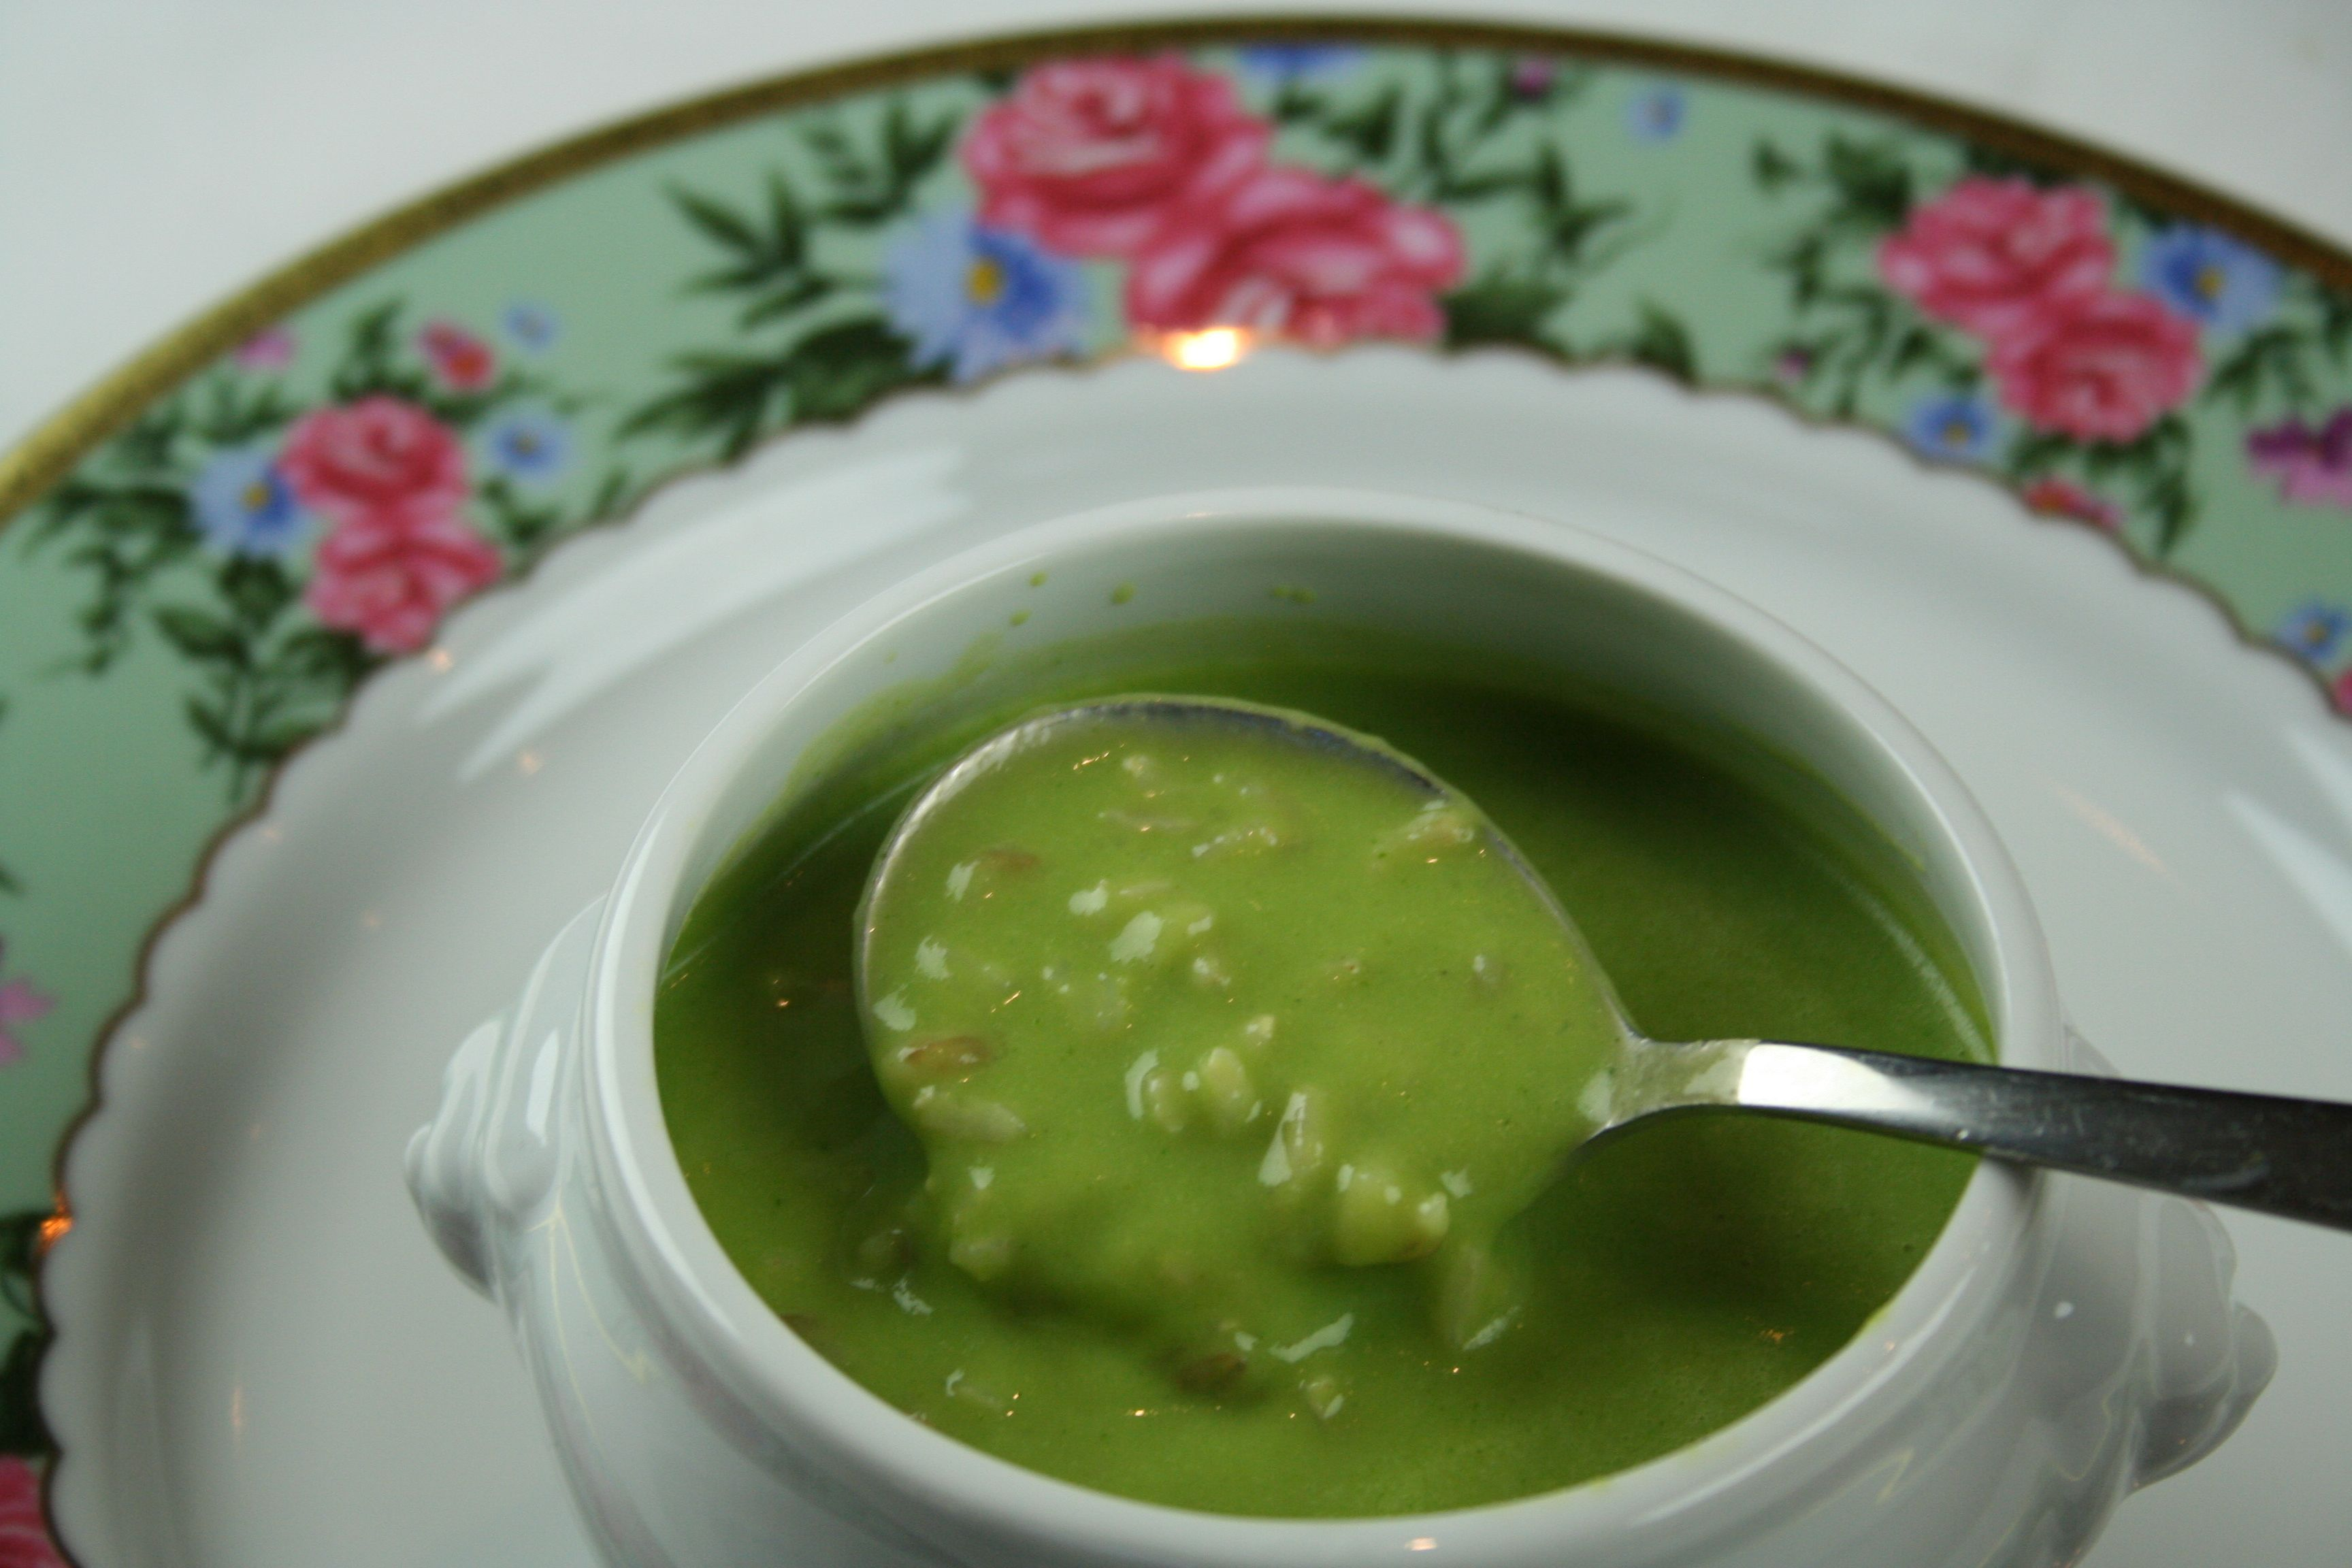 This split pea soup is marvelous to warm up on cold winter day.